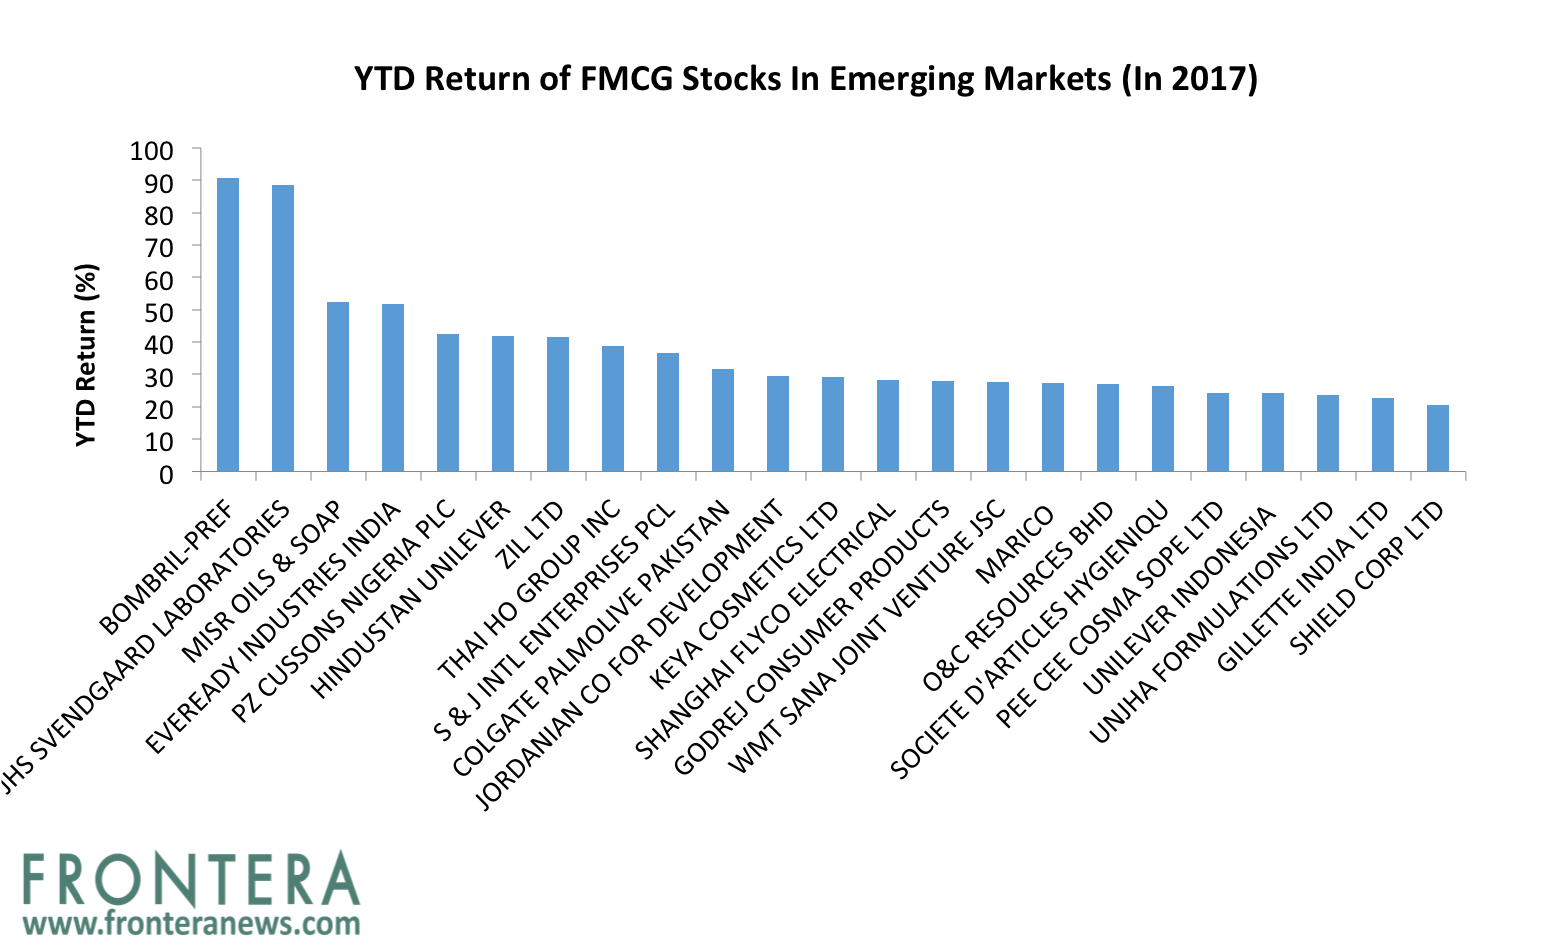 The 5 Largest Emerging Markets Based FMCG Stocks And Their ...